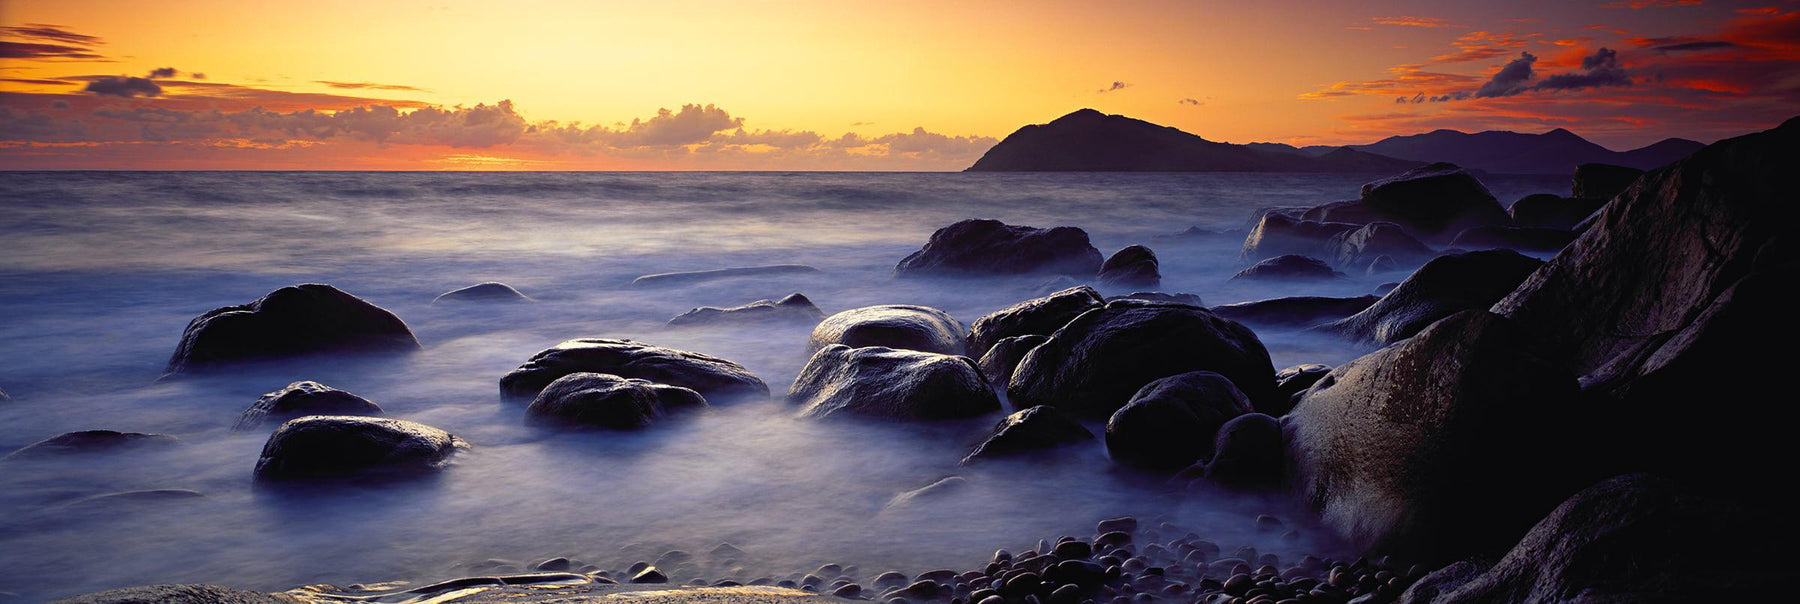 Rock beach being hit gently by waves at Orpheus Island Australia at sunrise